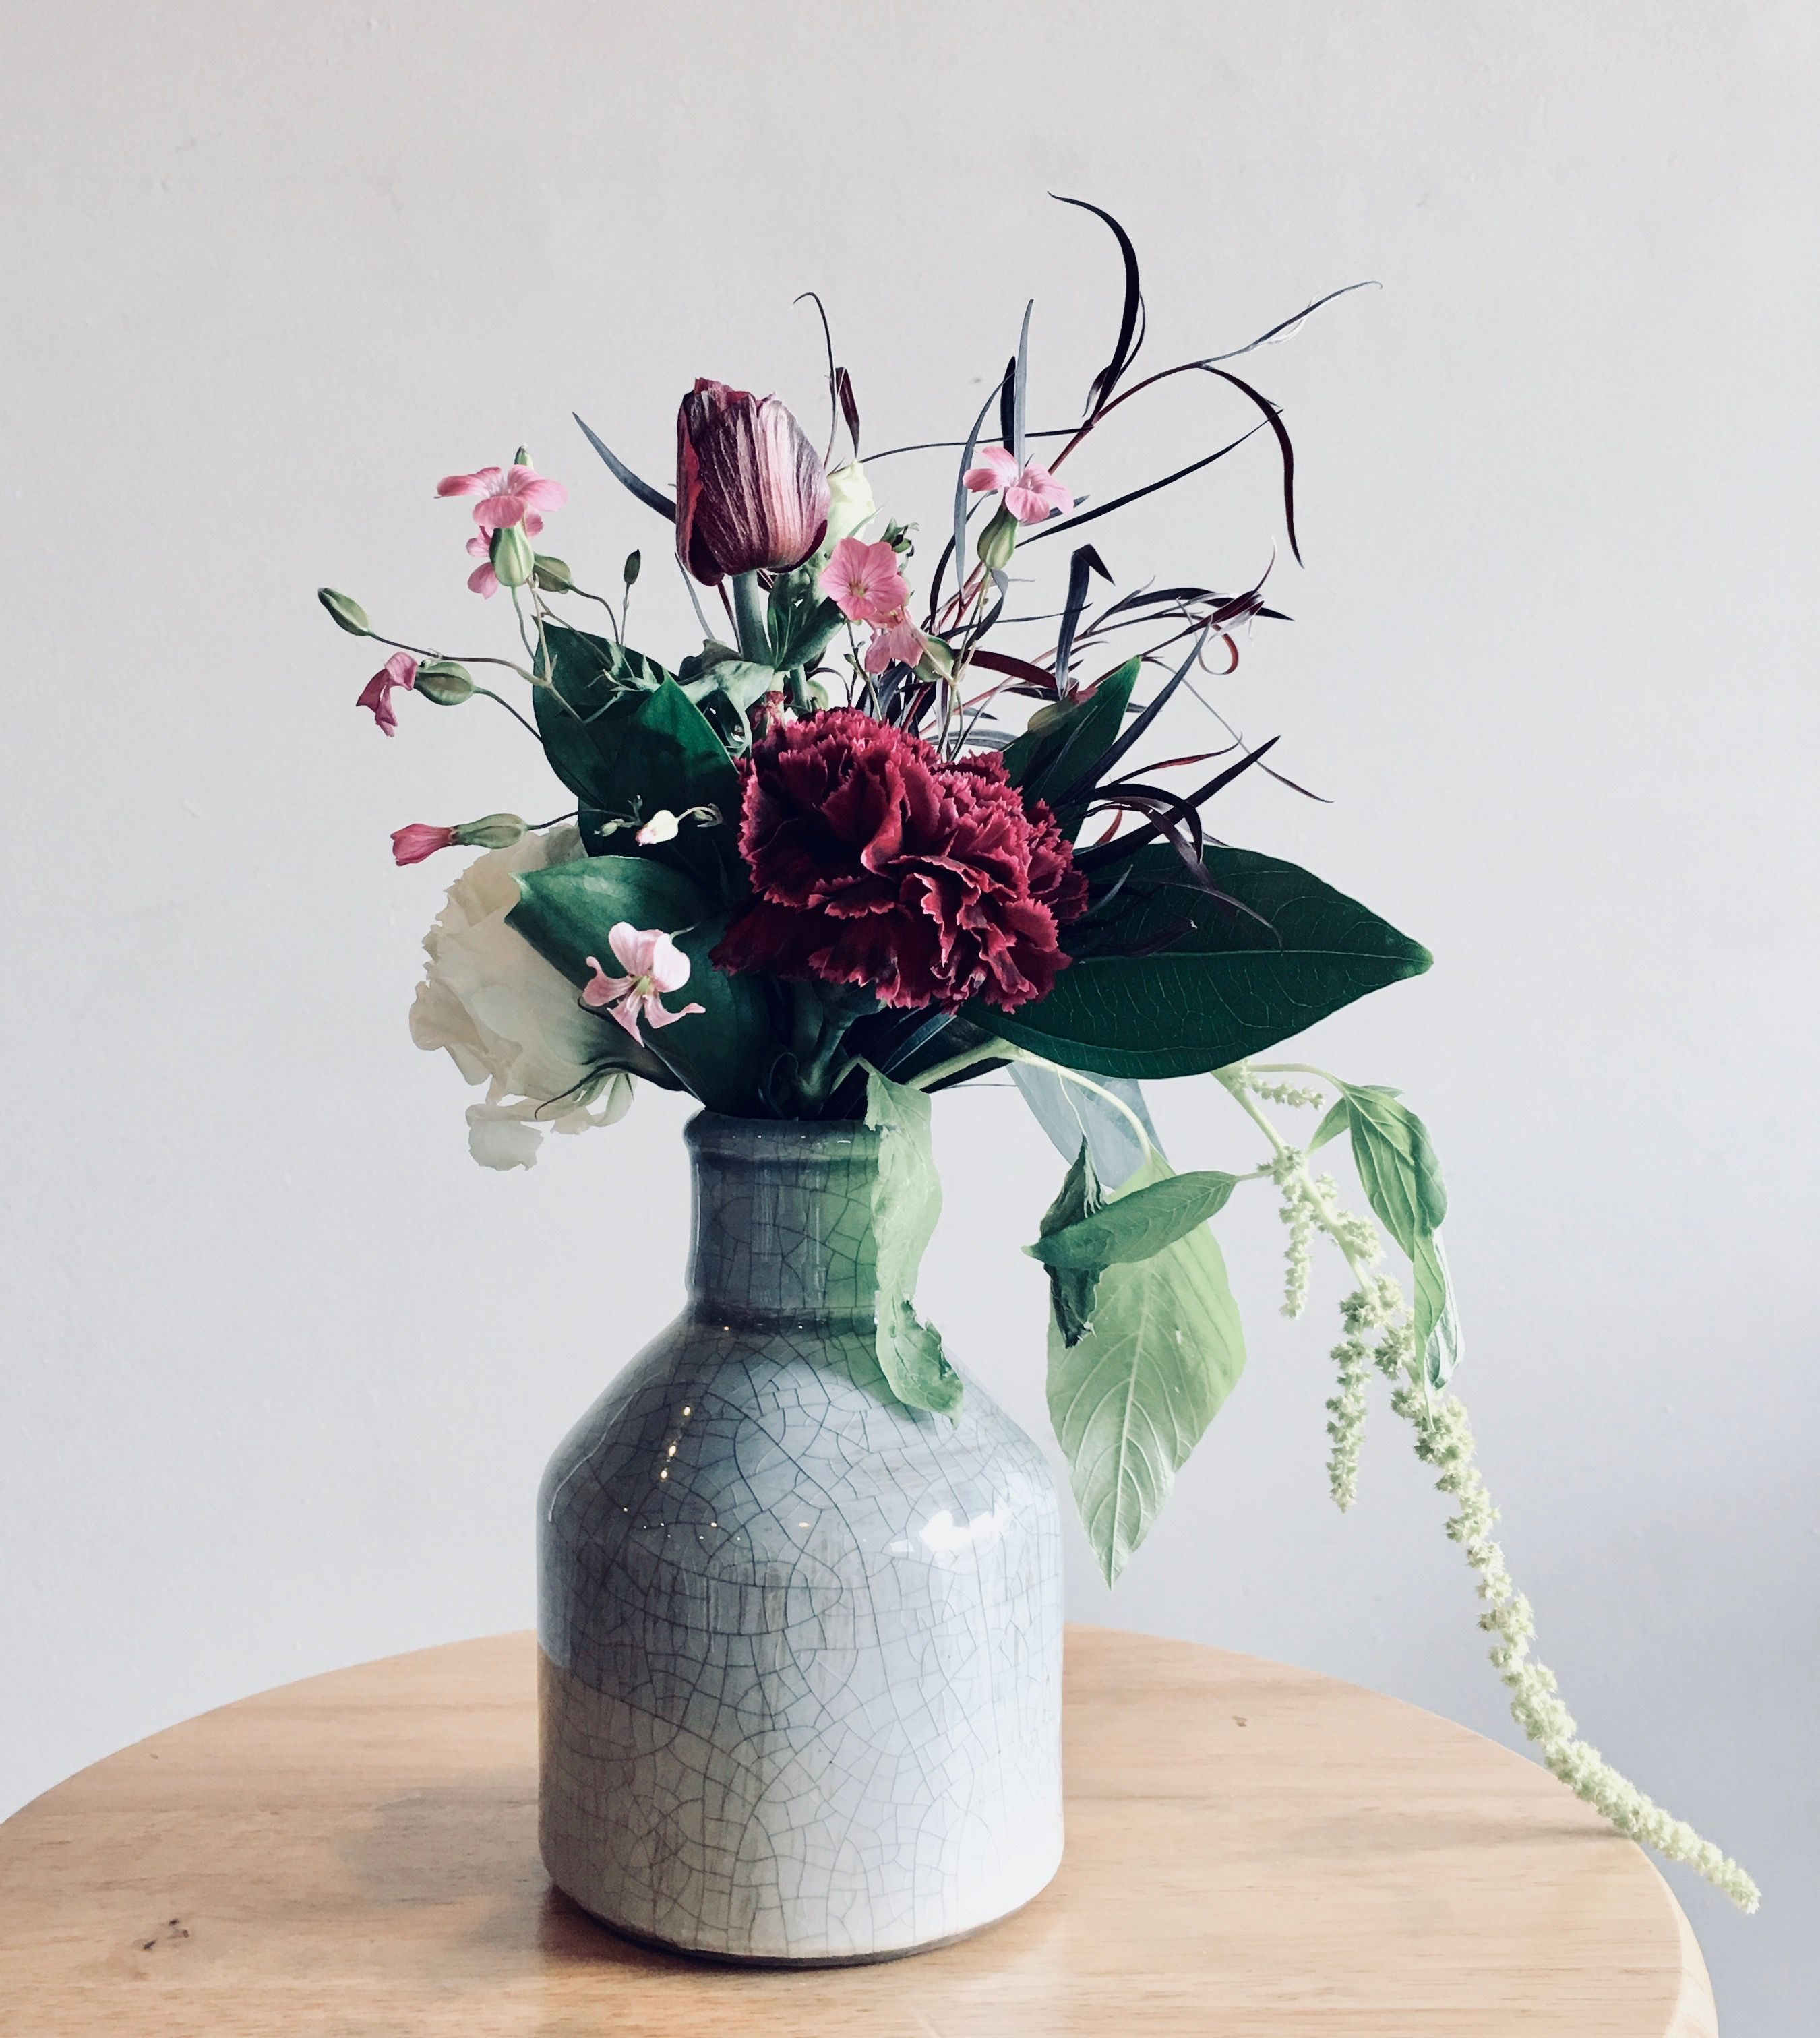 Curate a more inspired workspace! Your weekly Petalfox